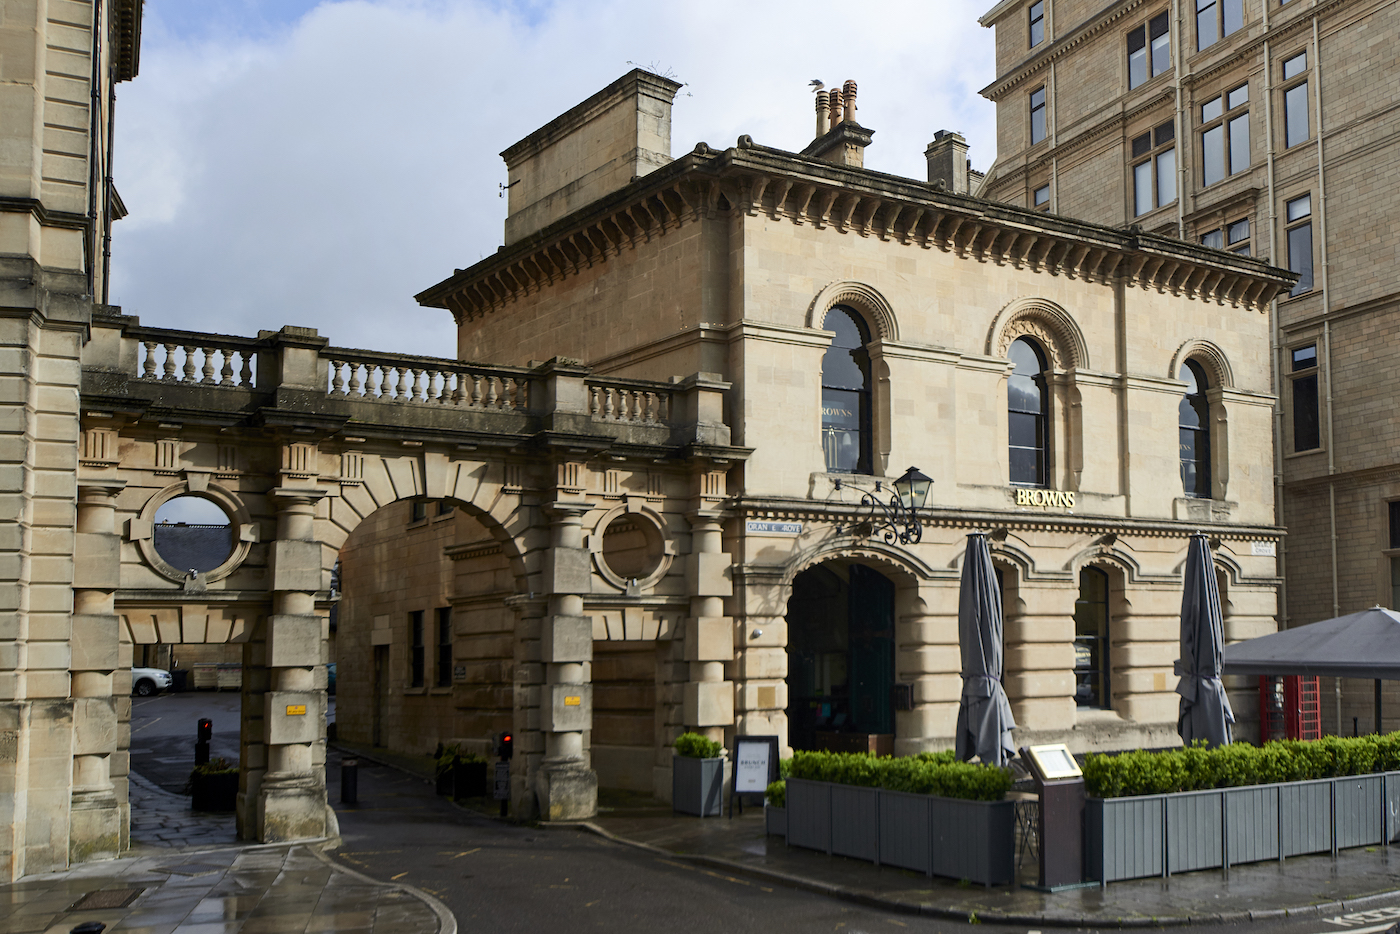 Browns Brasserie & Bar Bath